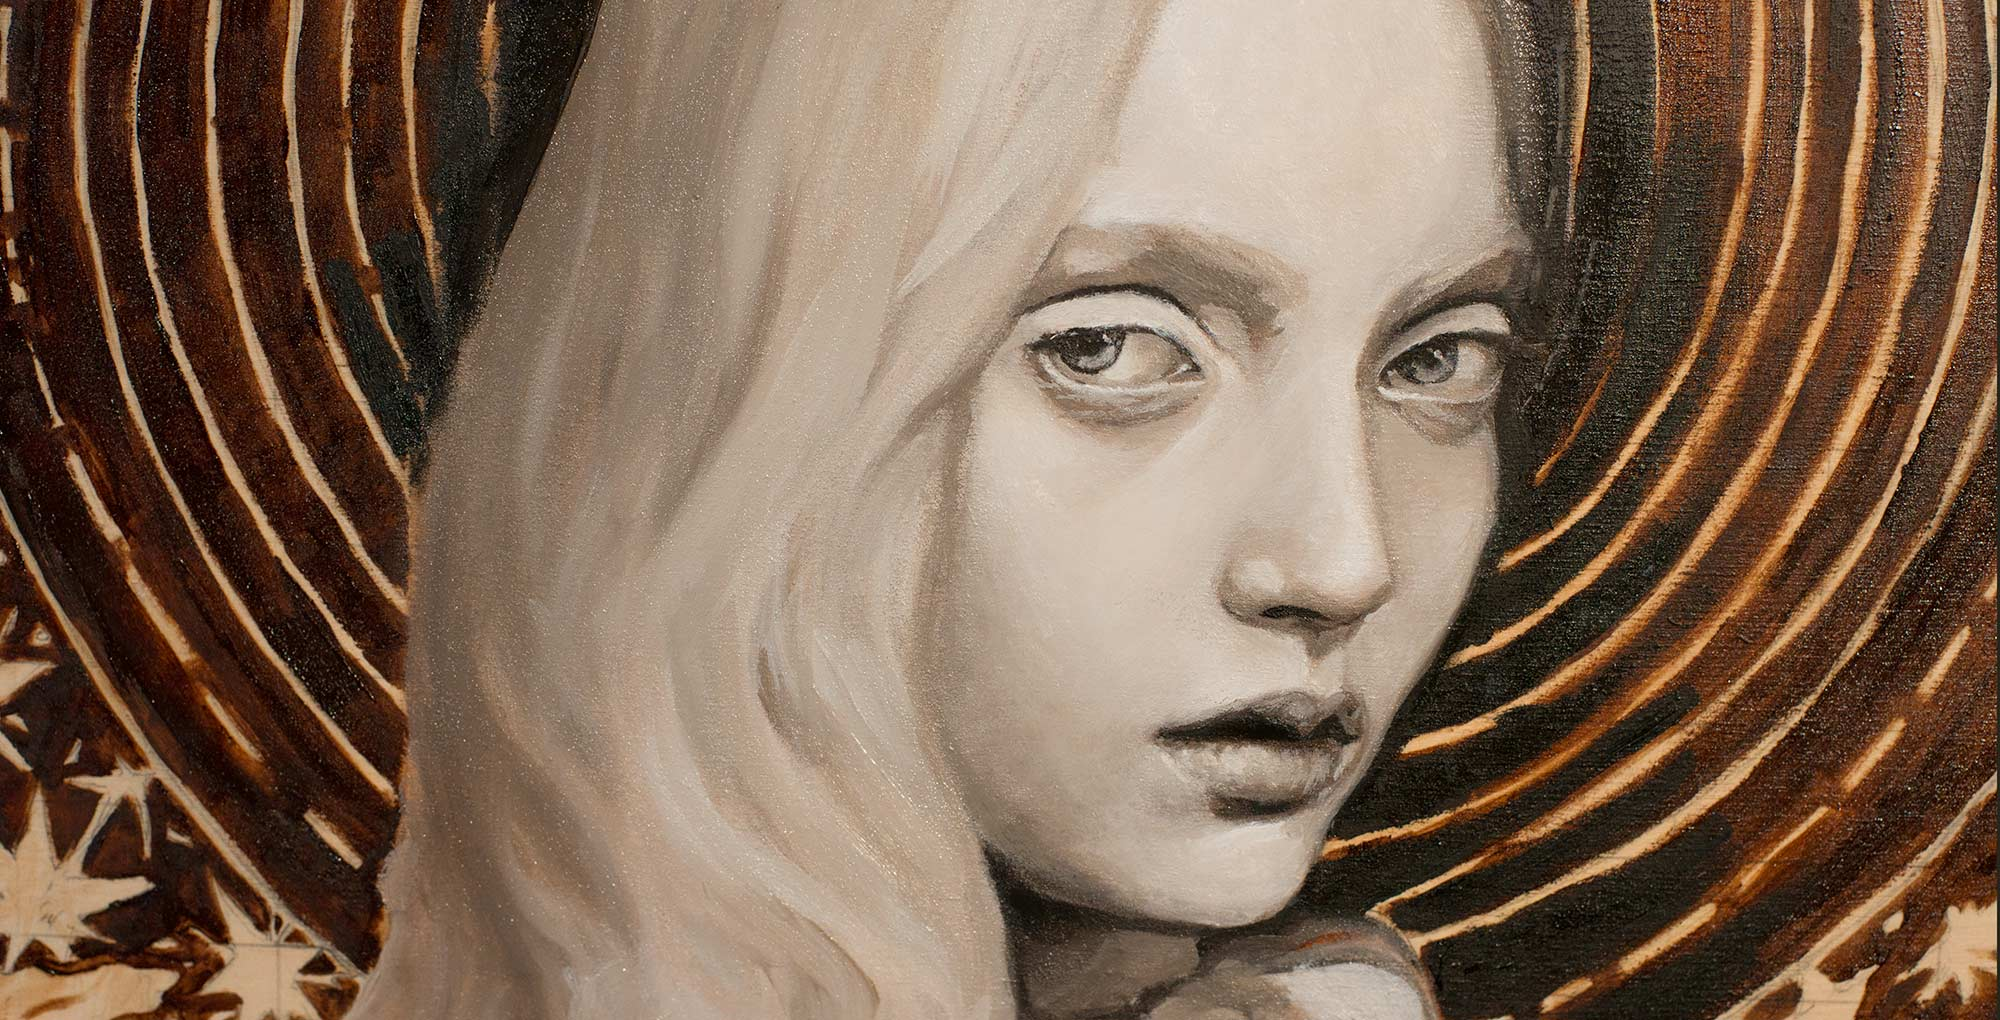 Codie Young Oil Painting Deadlayer Details of face by artist Danny roberts